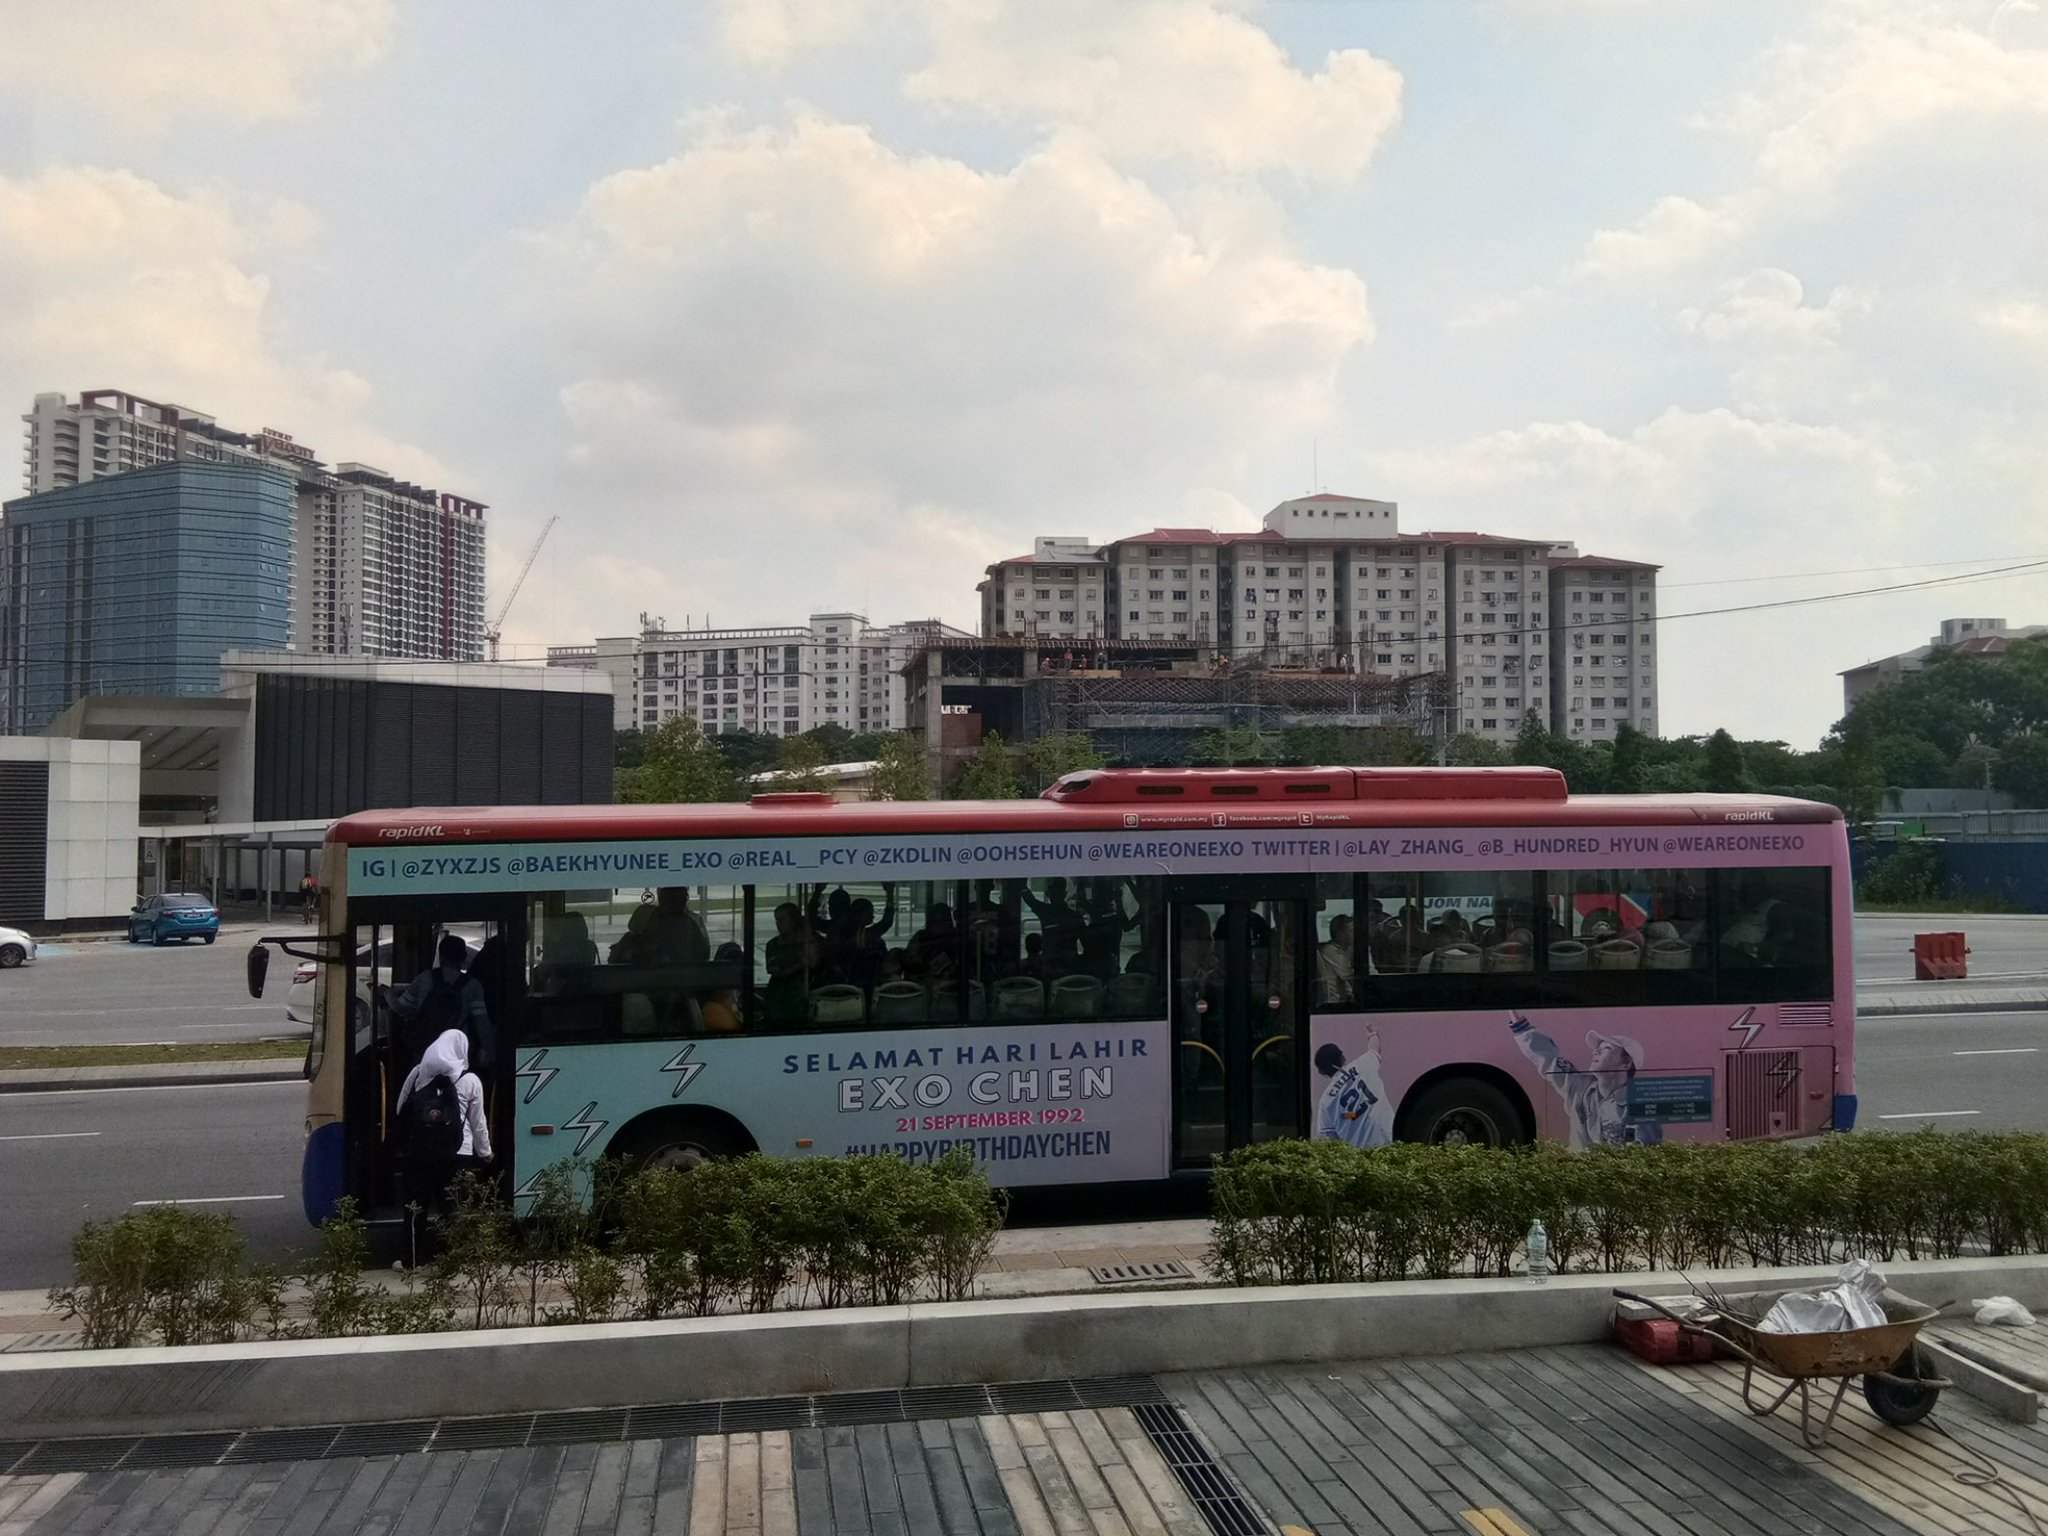 Chen bus in Malaysia!  #EXO #Chen #HappyChenDay https://t.co/lC4loSZOW6